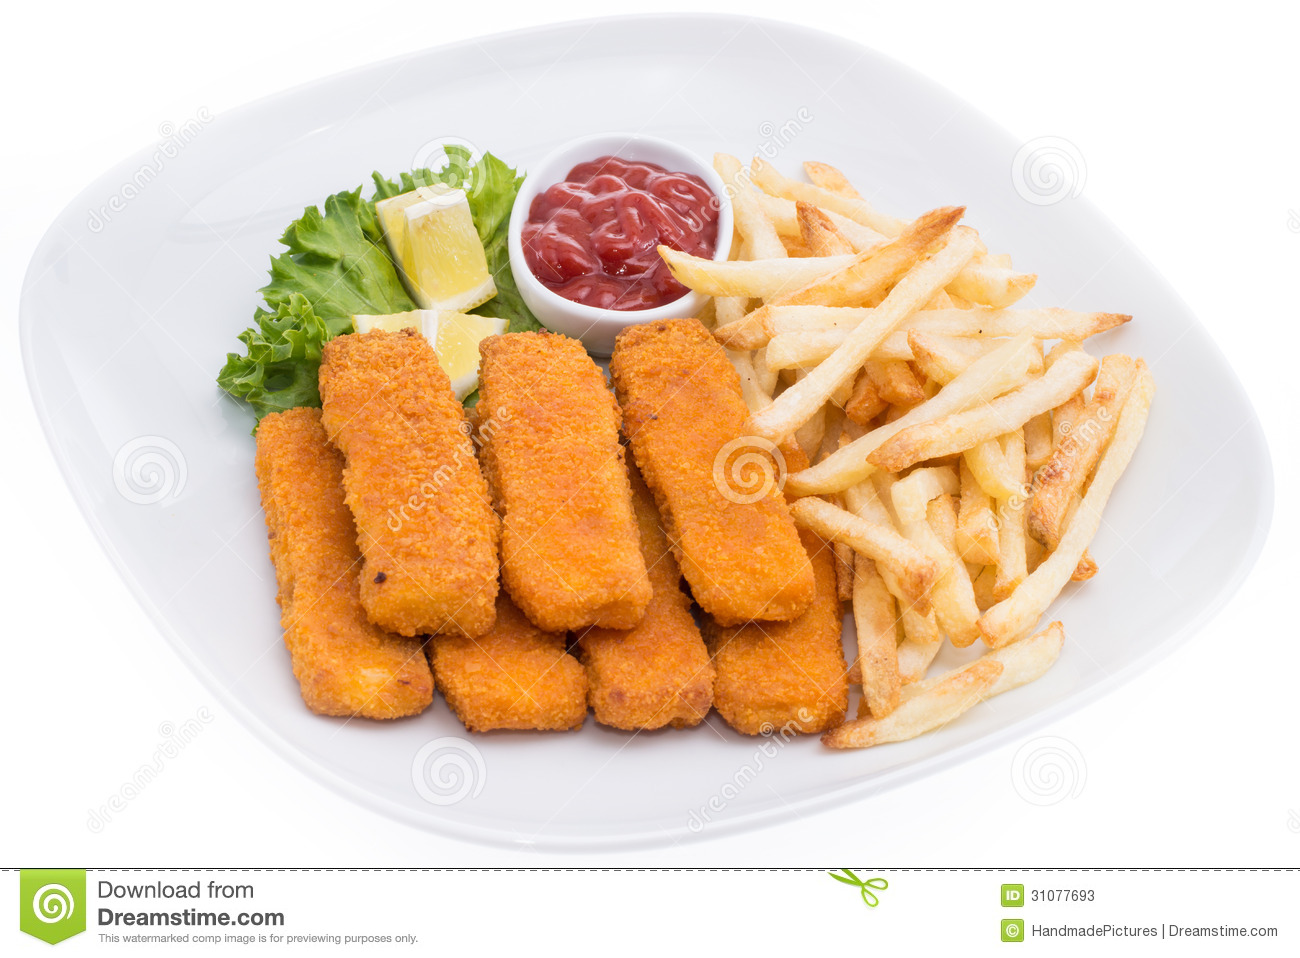 Fish Fingers With Chips Isolated On White Stock Image - Image of fast, food: 31077693